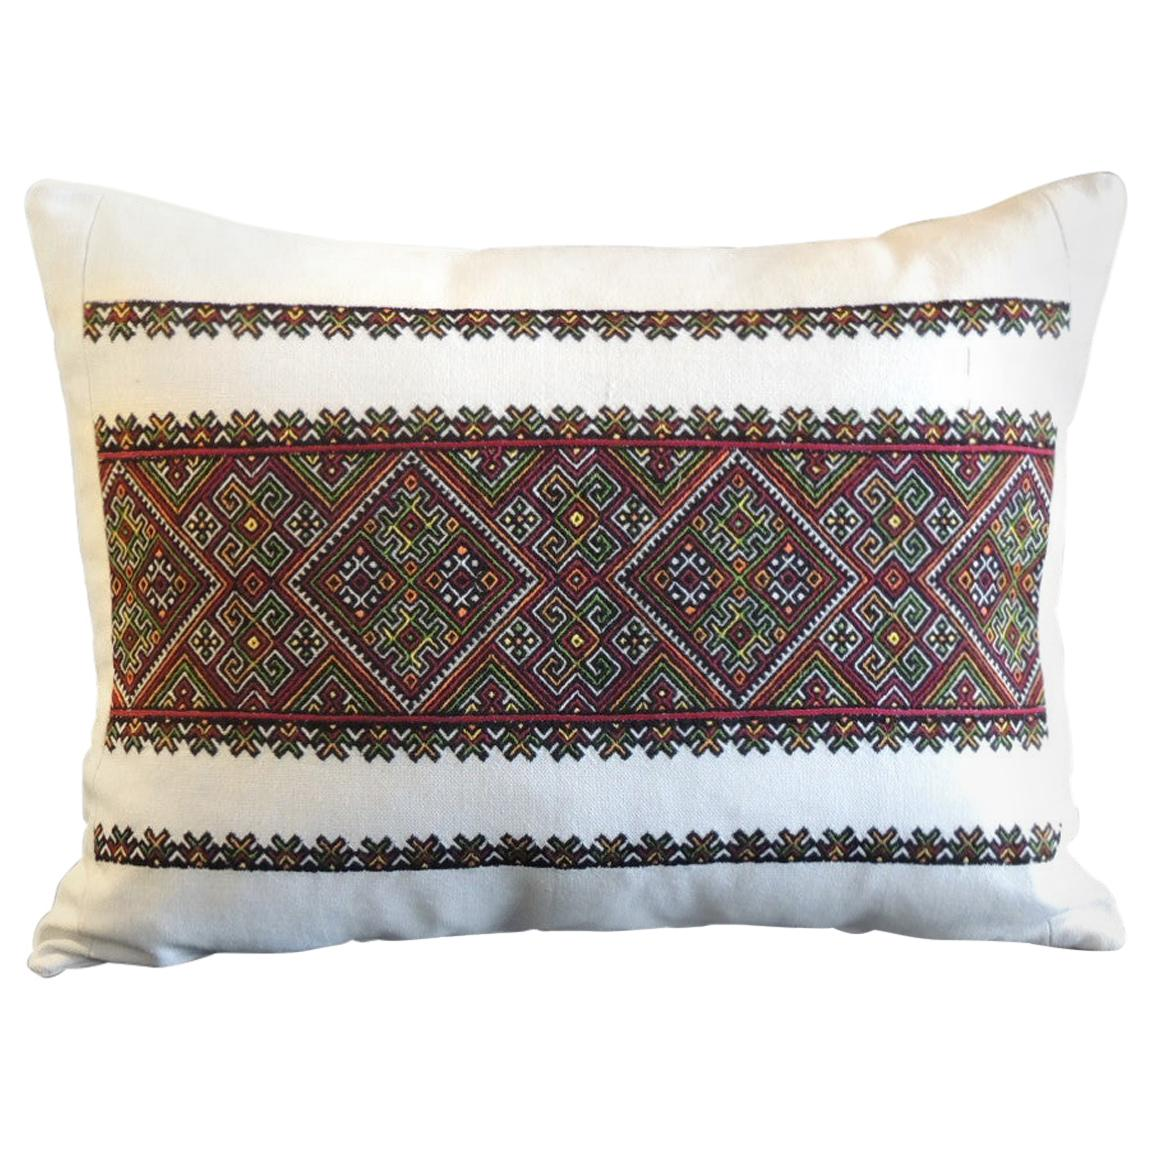 Vintage Anatolian Red and Green Embroidery Bolster Pillow